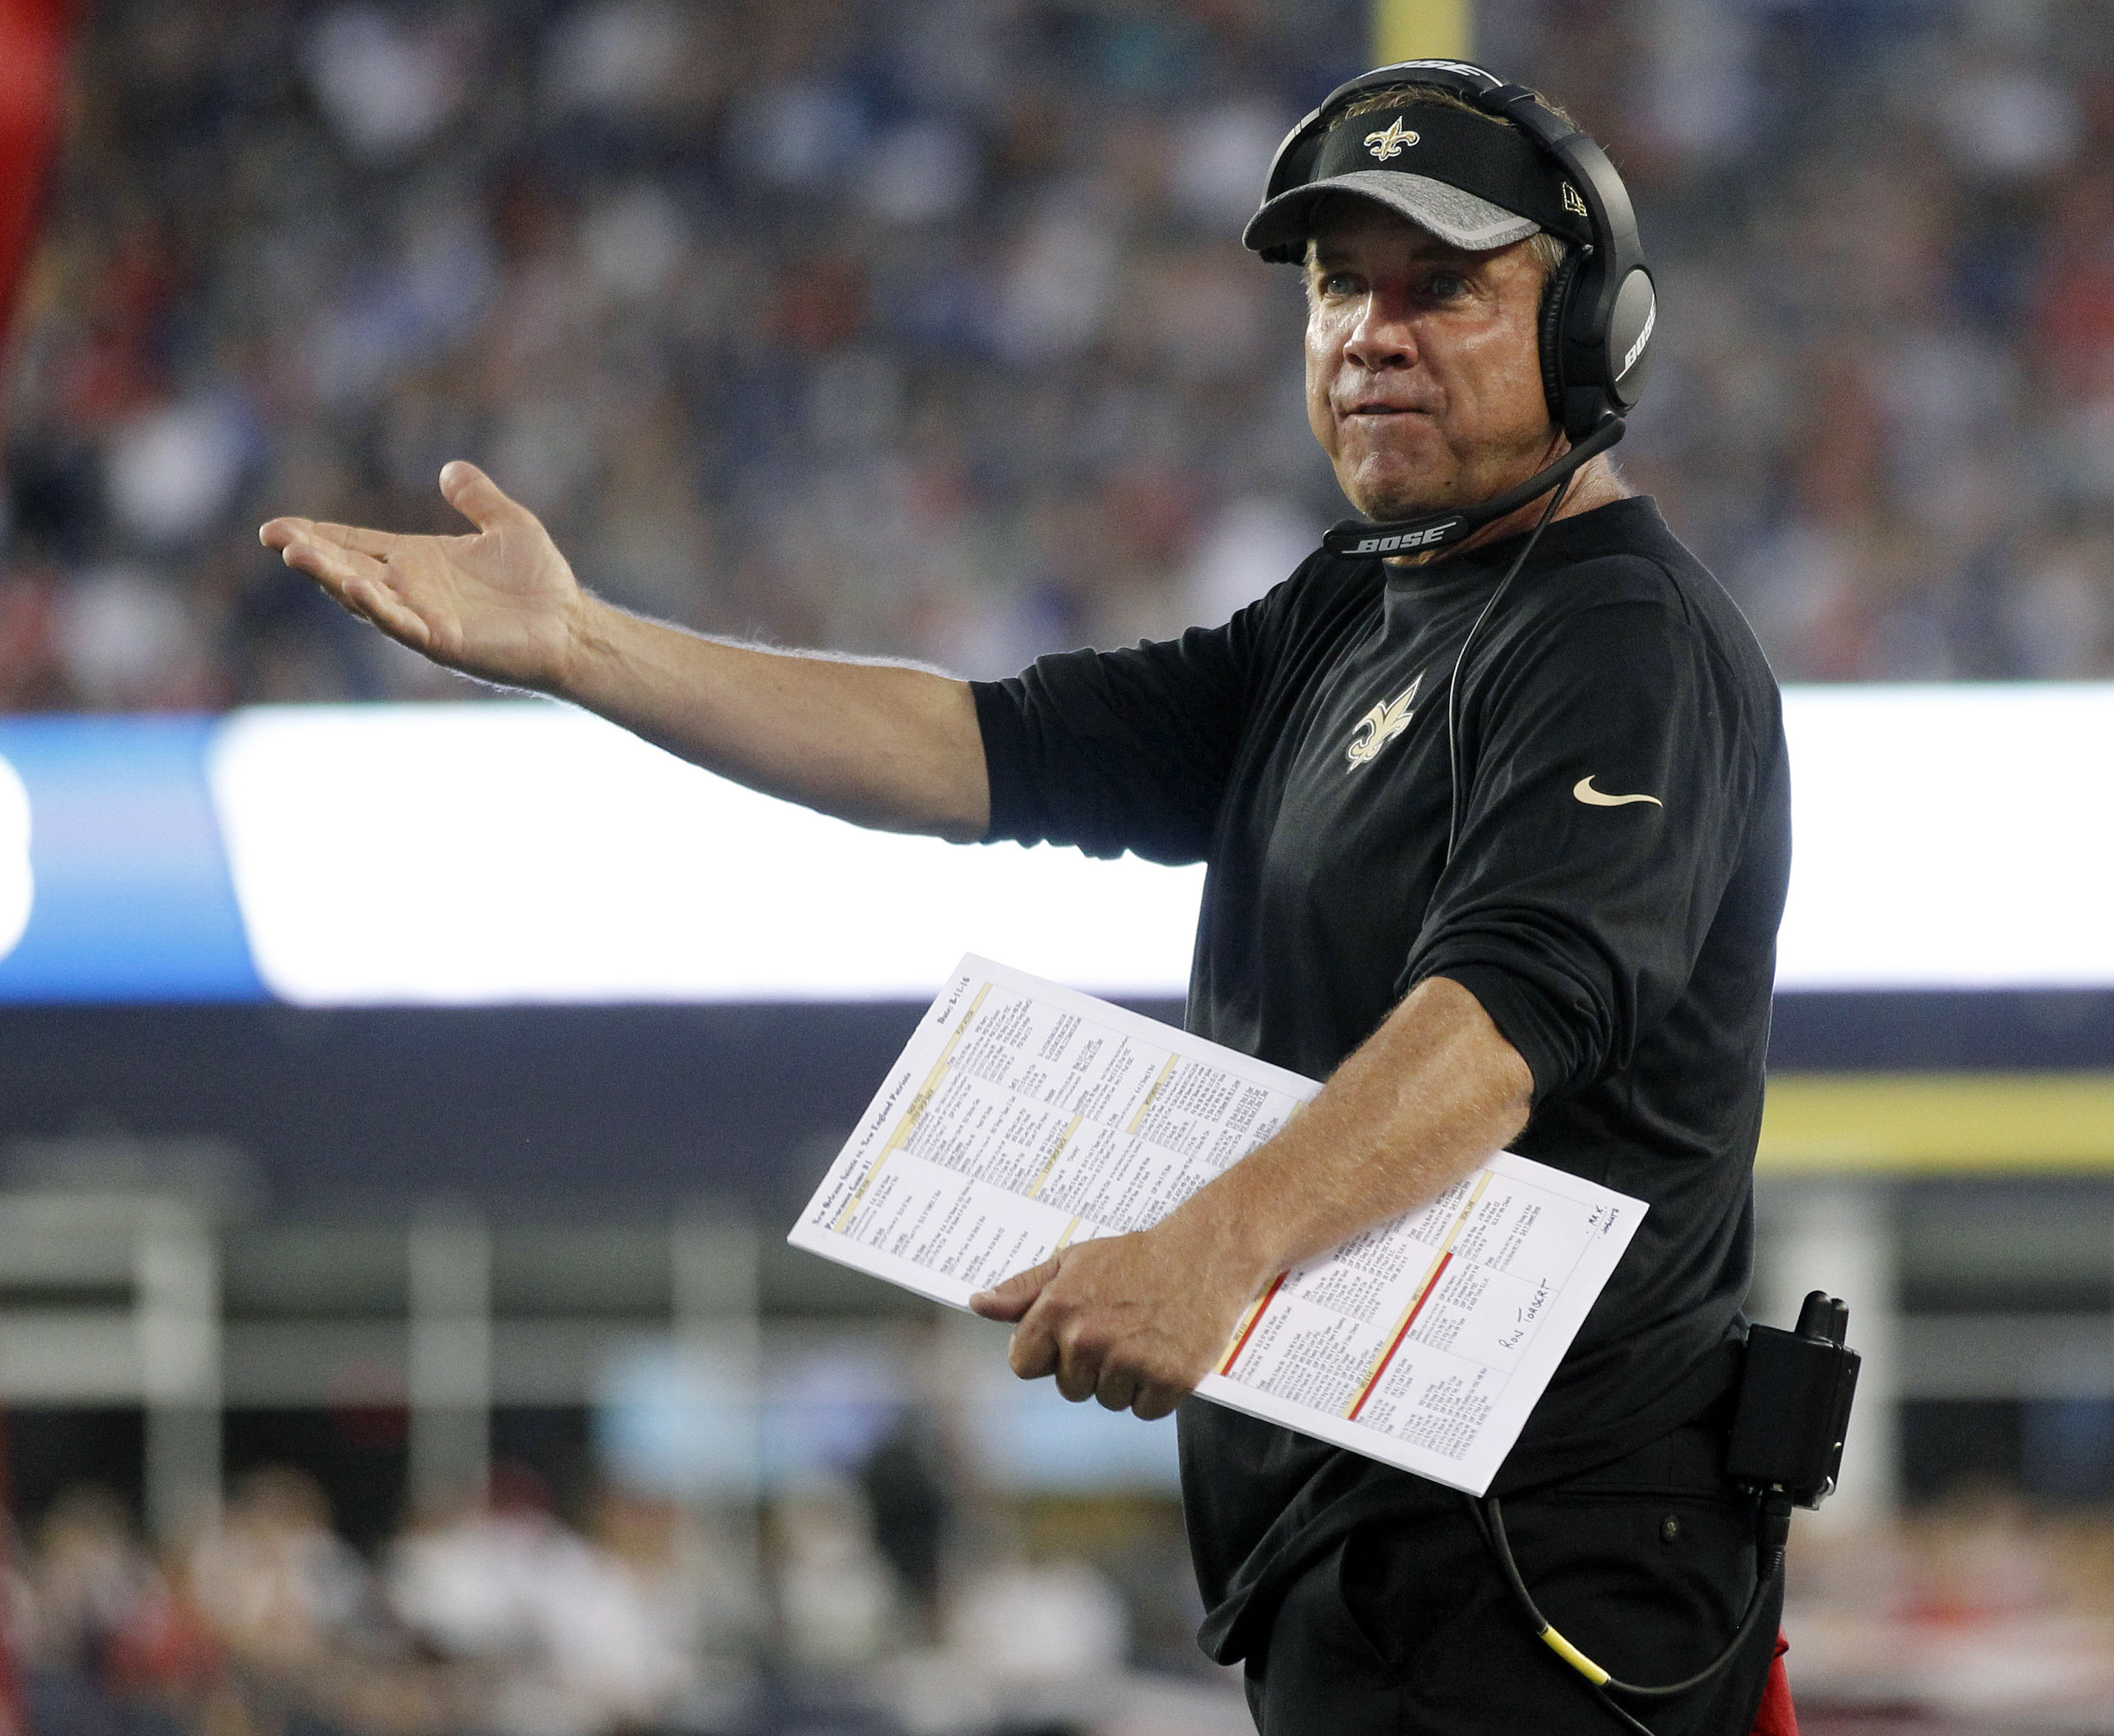 FILE - In this Aug. 11, 2016, file photo, New Orleans Saints coach Sean Payton gestures from the sideline during the team's preseason NFL football game against the New England Patriots in Foxborough, Mass. Payton is prepared to quit calling offensive play